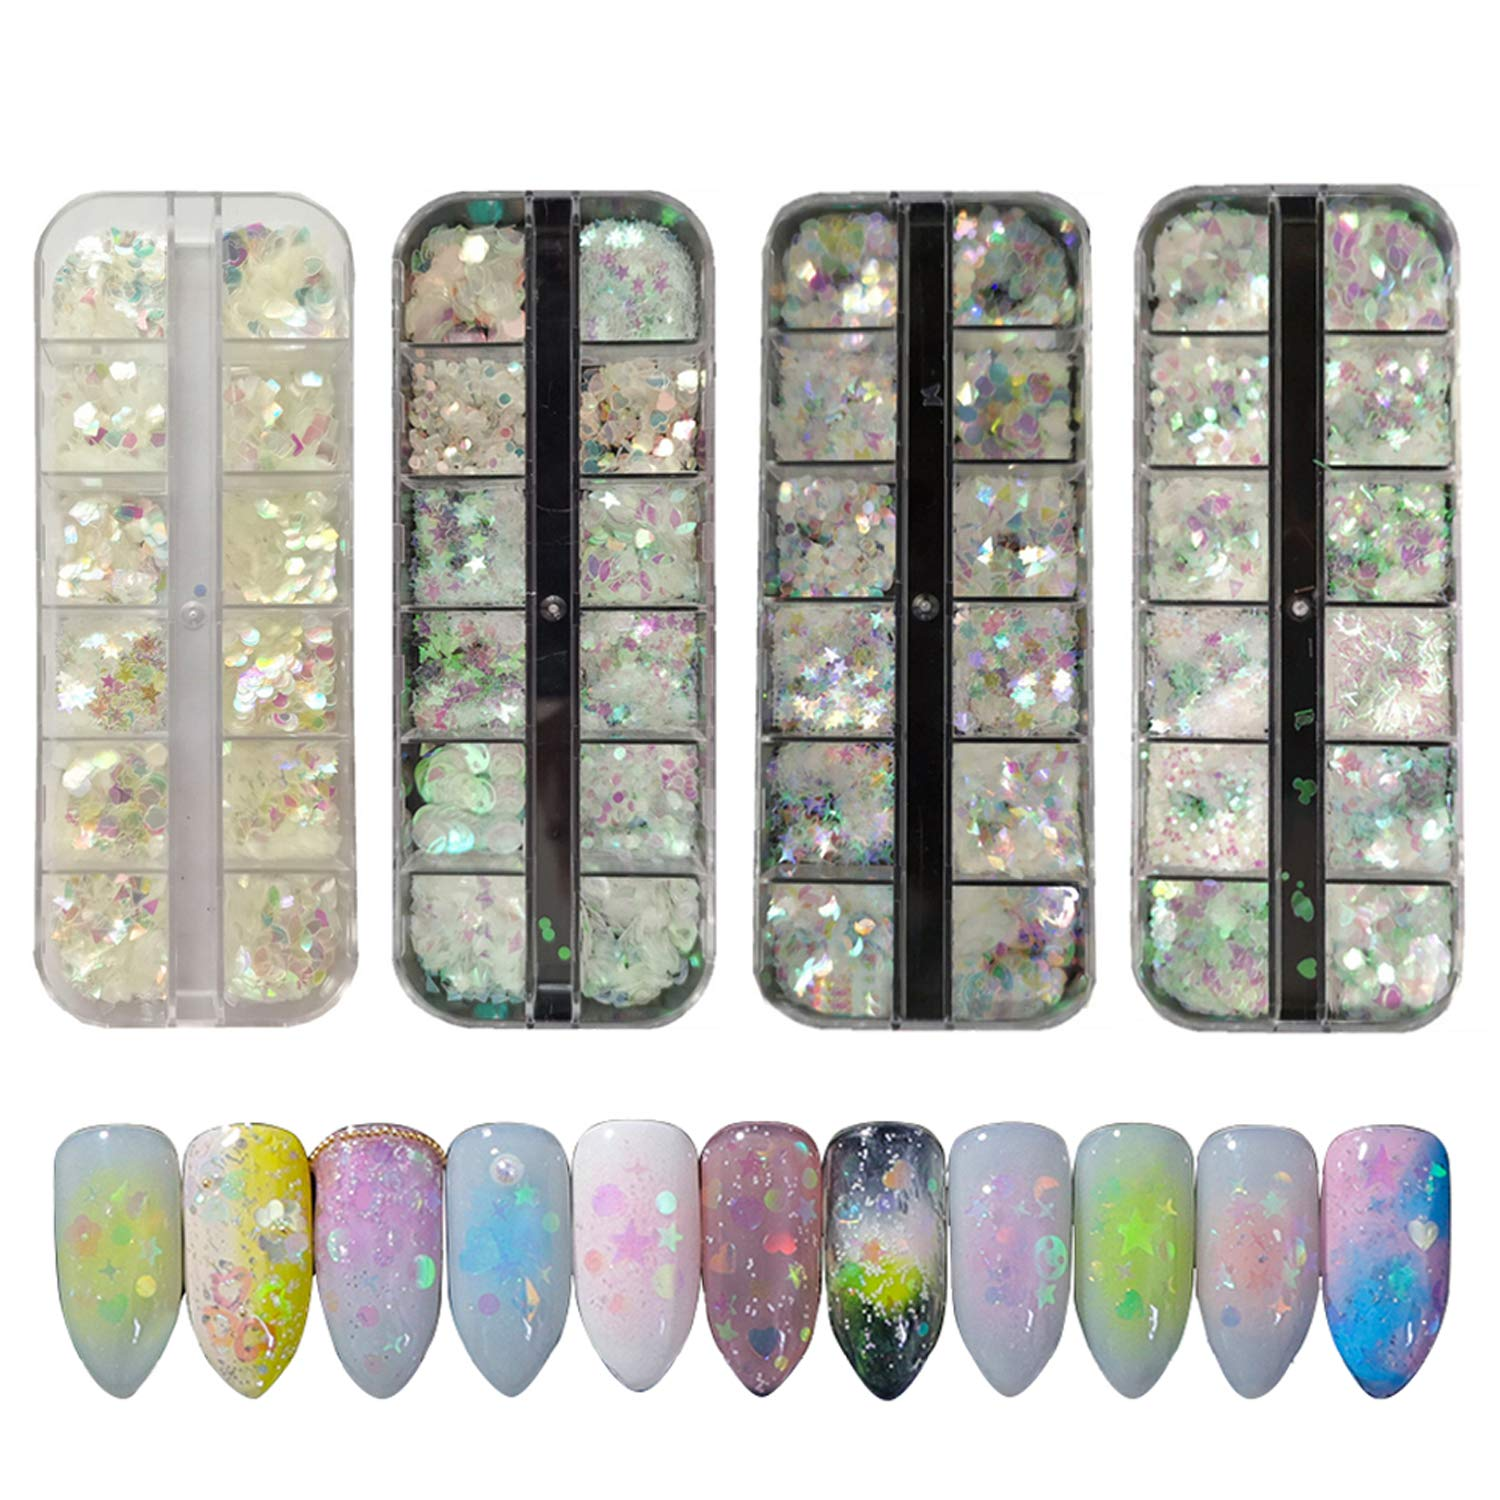 Tingbeauty 48 Boxes Holographic Nail Sequins Iridescent Mermaid Flakes Colorful Nail Art Glitter Sticker Semi-transparent Thin DIY Decals Decoration for Face Hair Body Eyes by Tingbeauty